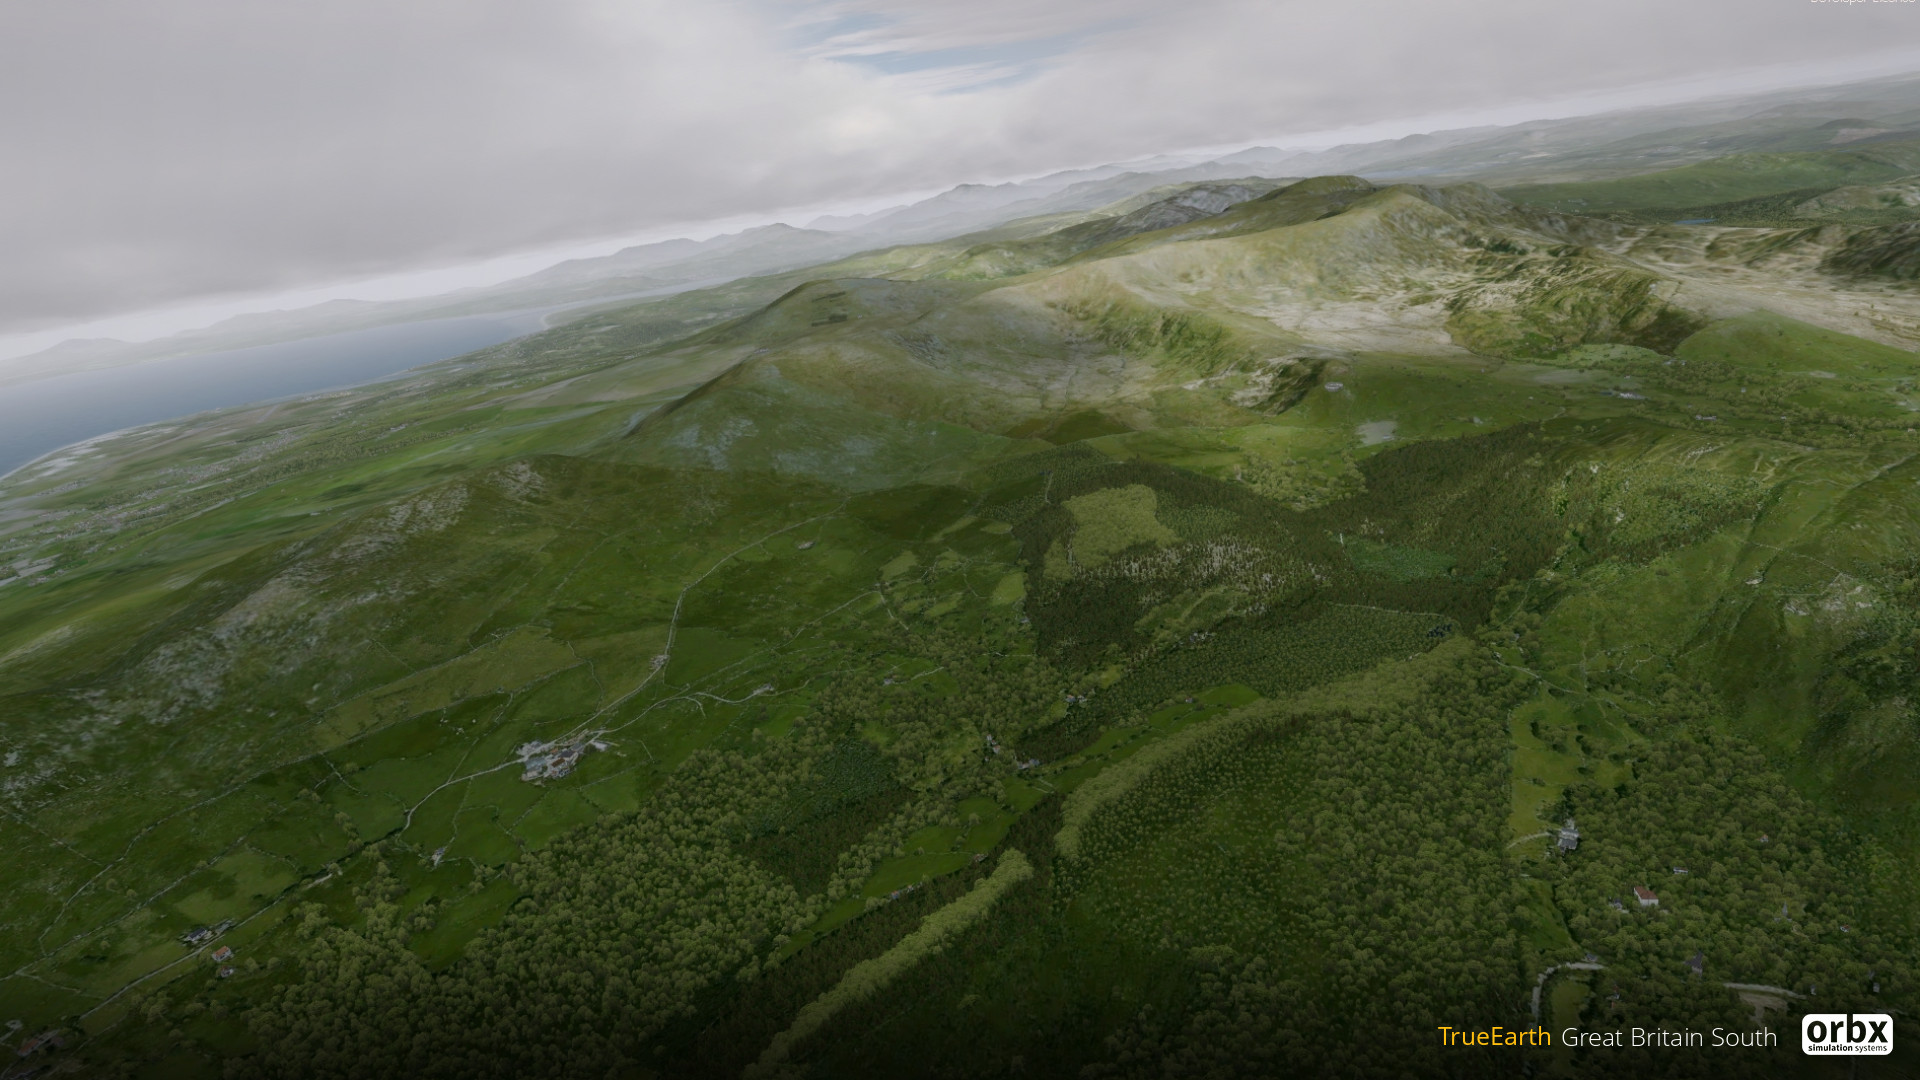 TrueEarth GB South P3D4 4 - Some from the Welsh coast